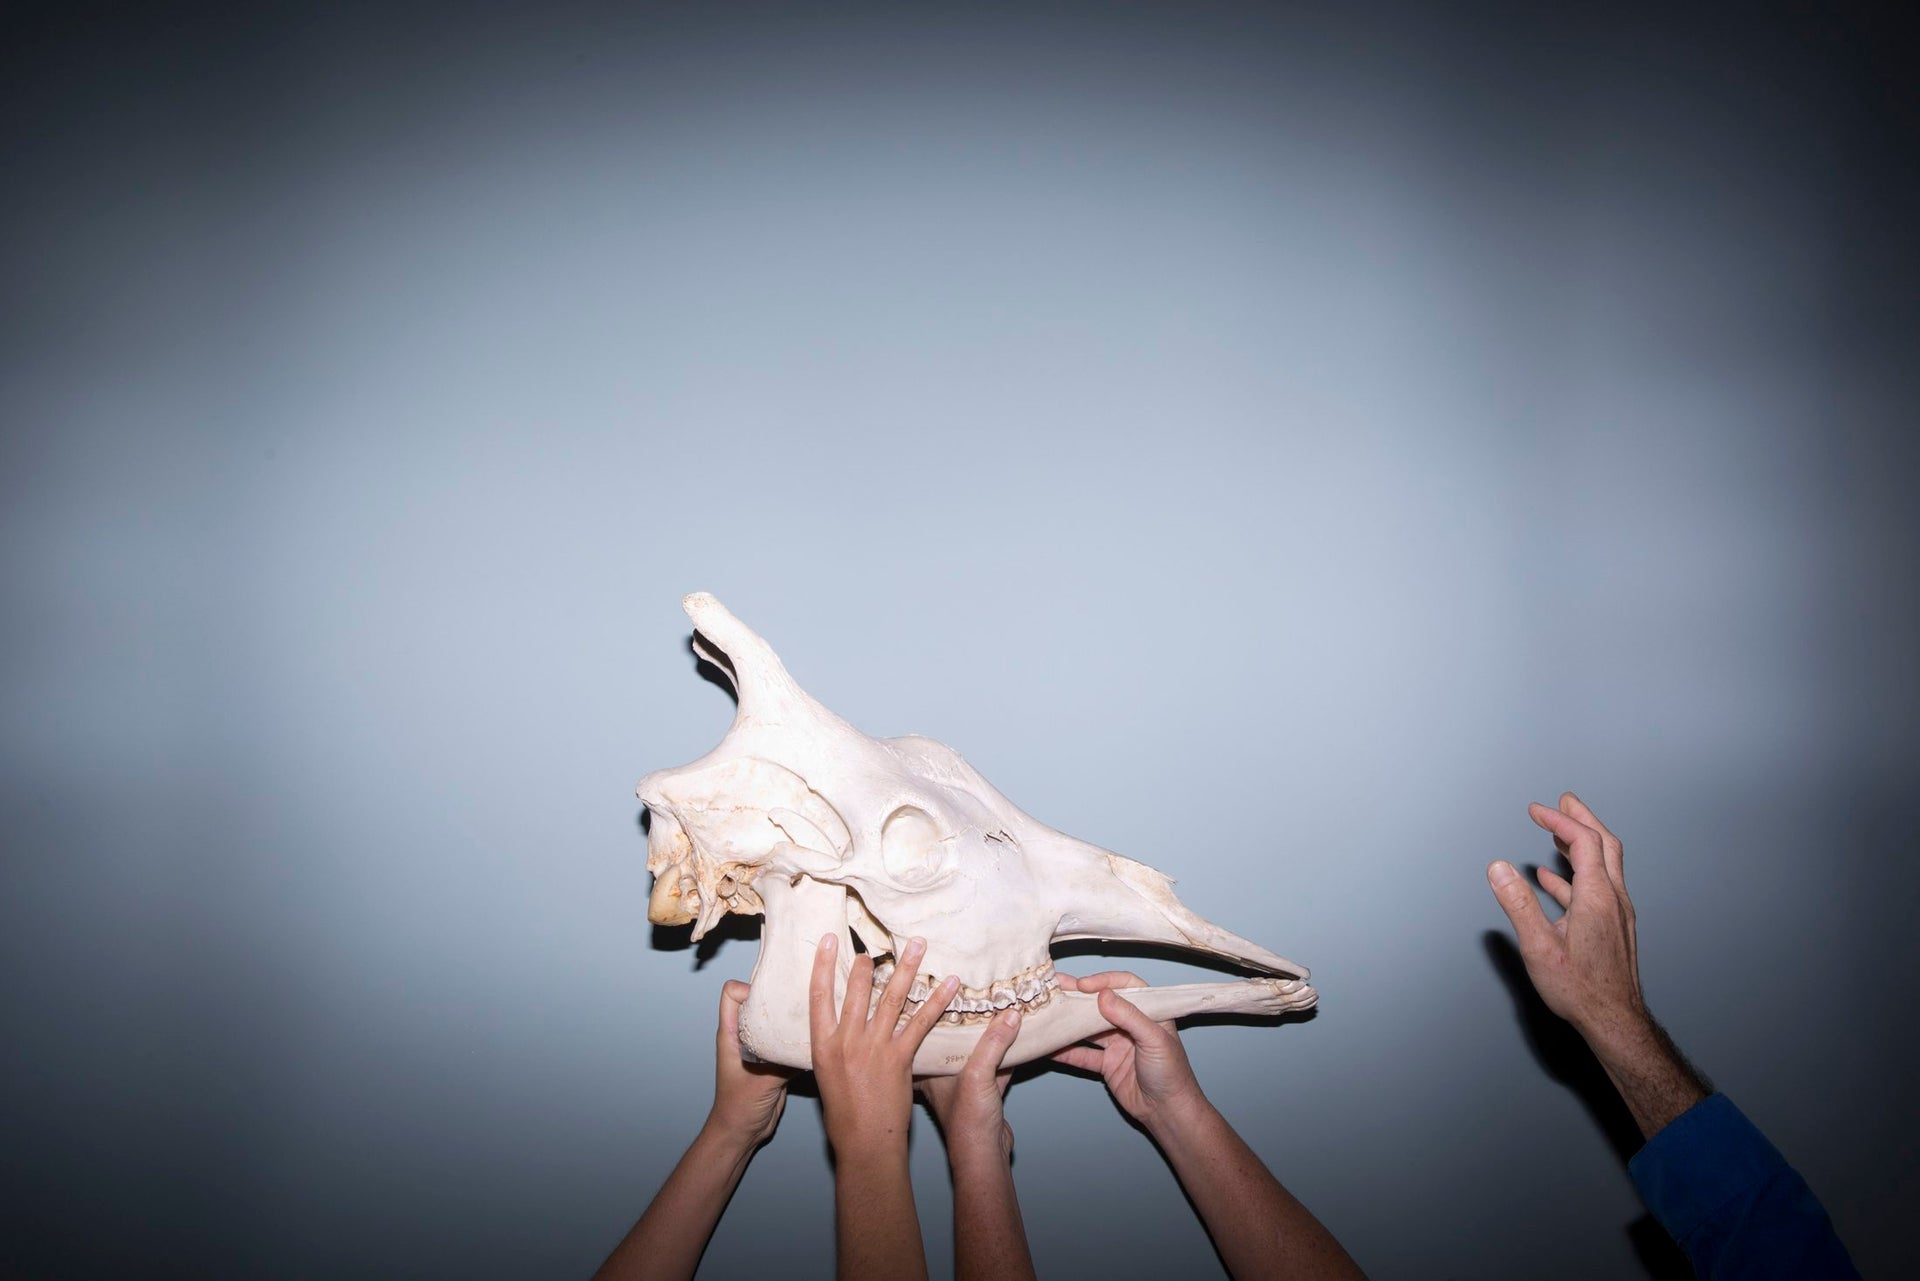 In this Monday, Oct 23, 2017 photo, exhibition designers hold a giraffe skull to be displayed at the Steinhardt Museum of Natural History in Tel Aviv, Israel.